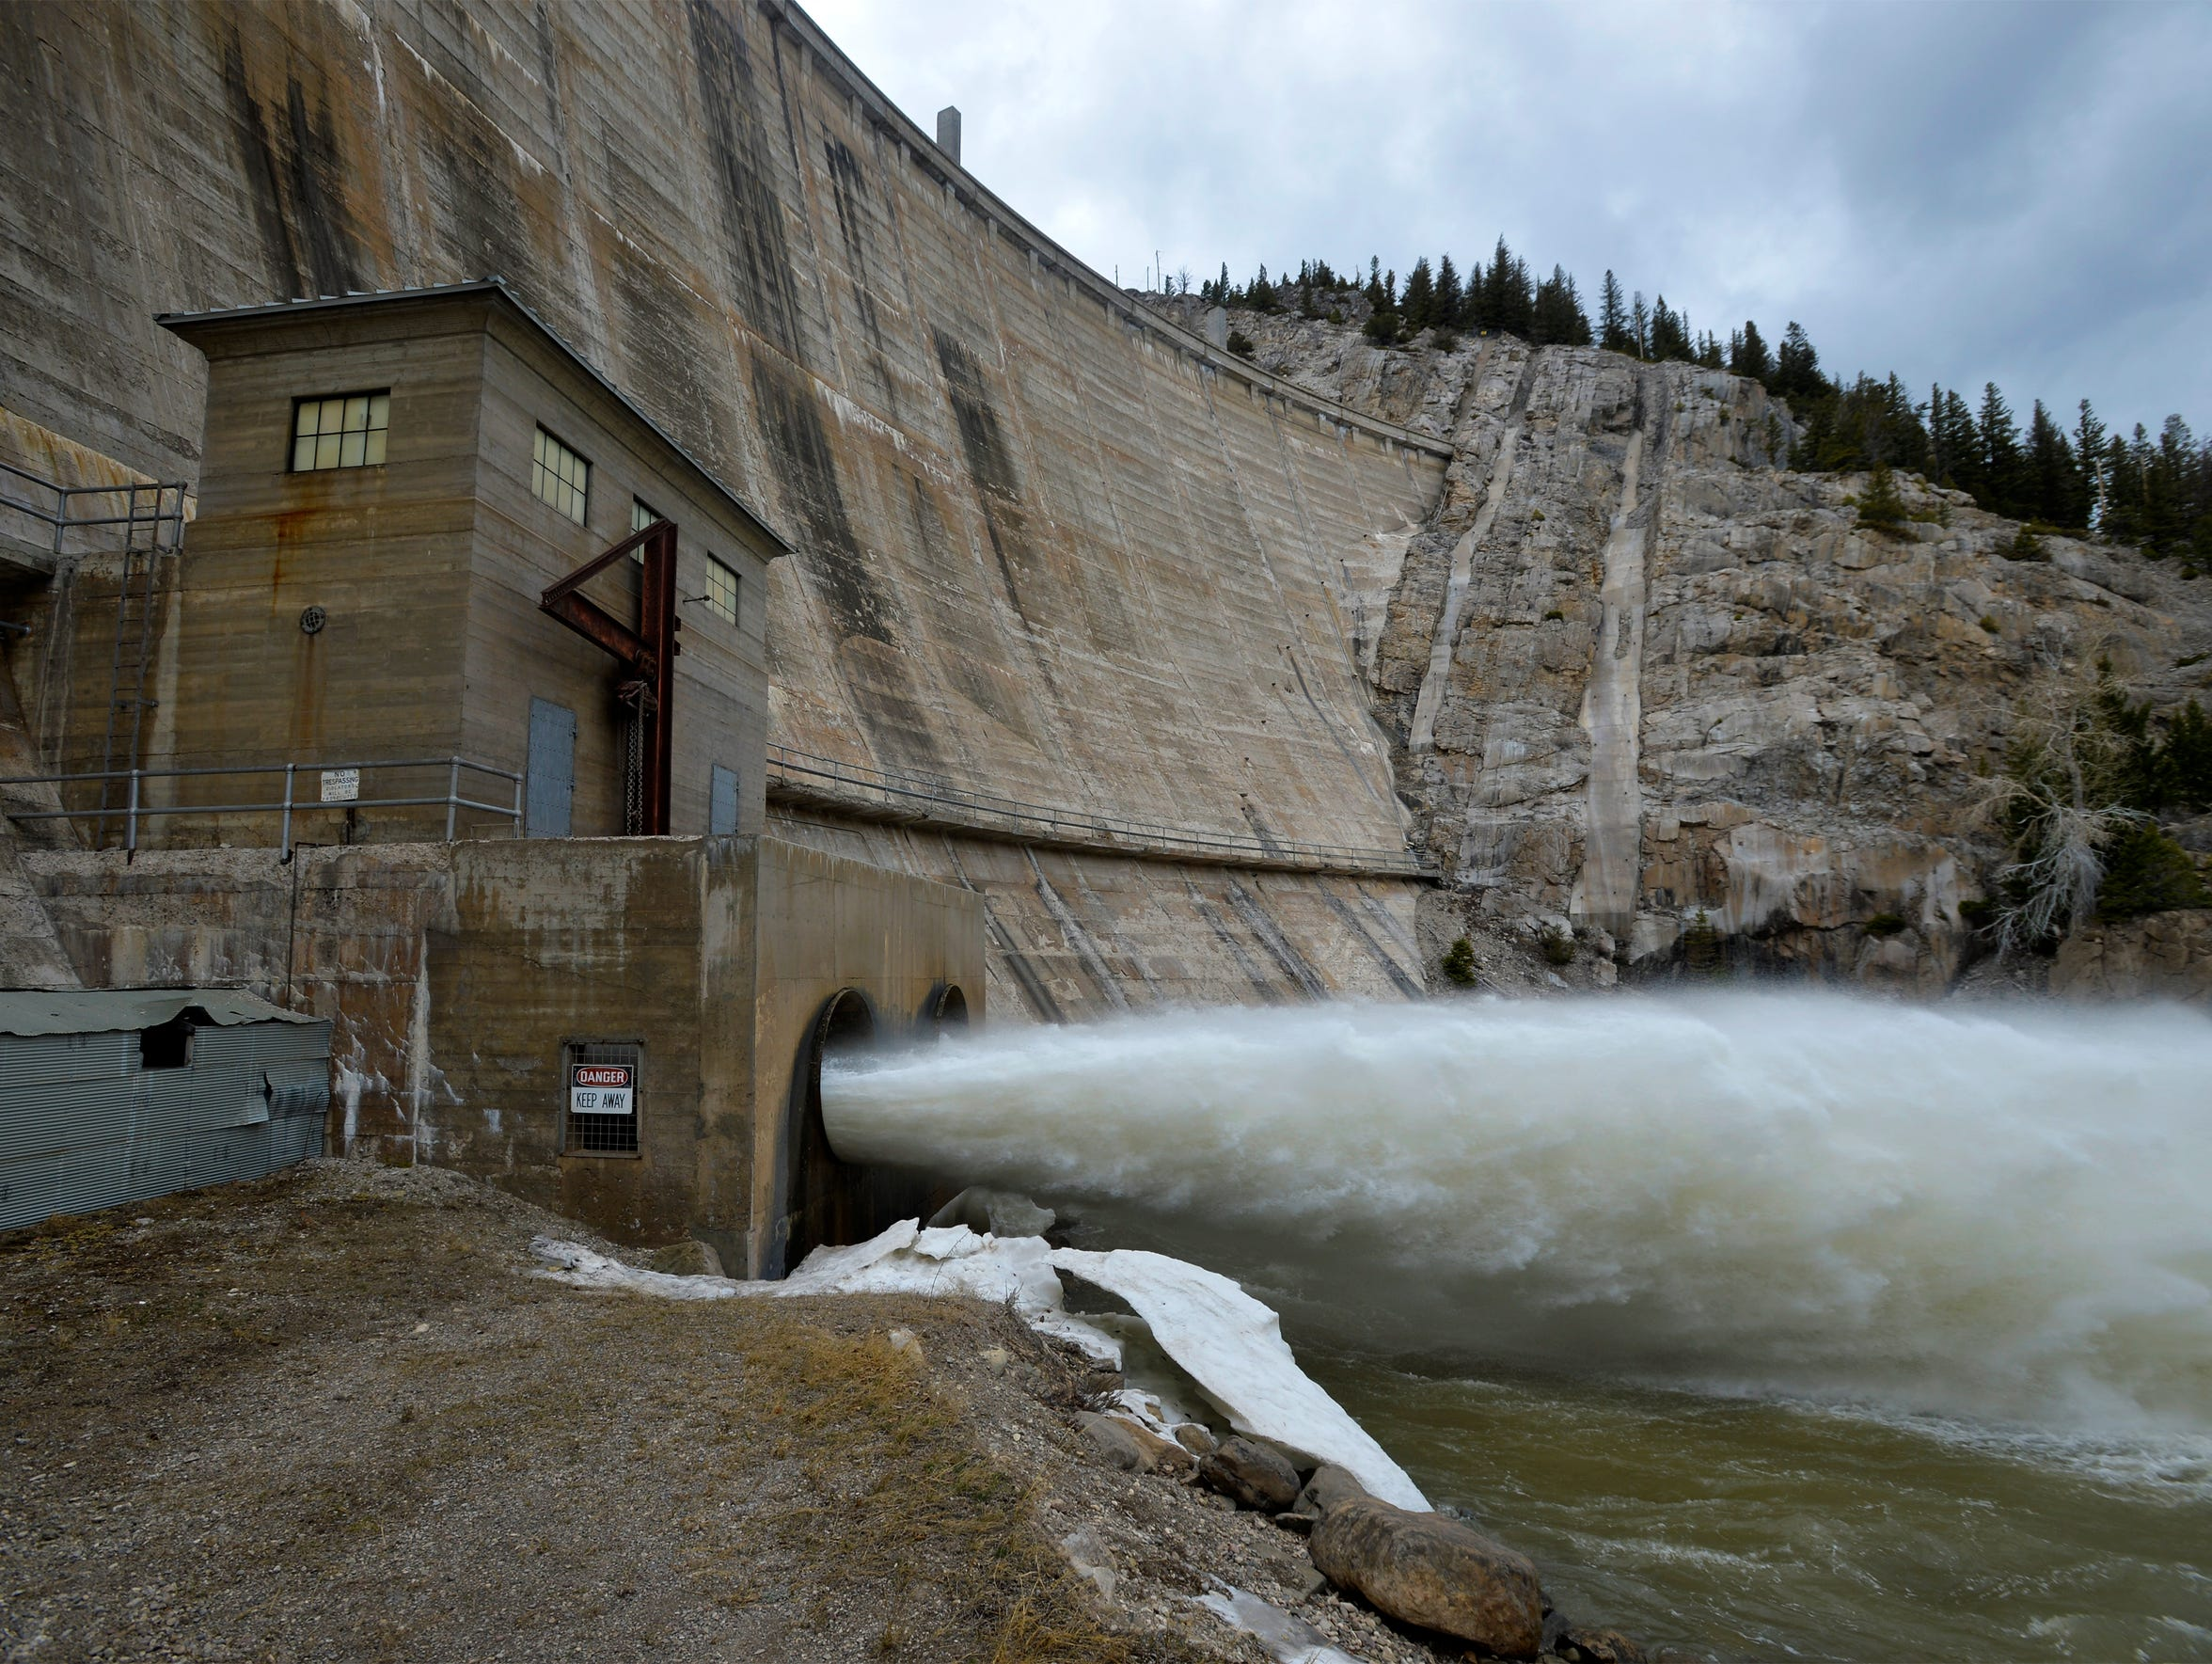 72-inch pipes shoot water from the outflow gates at